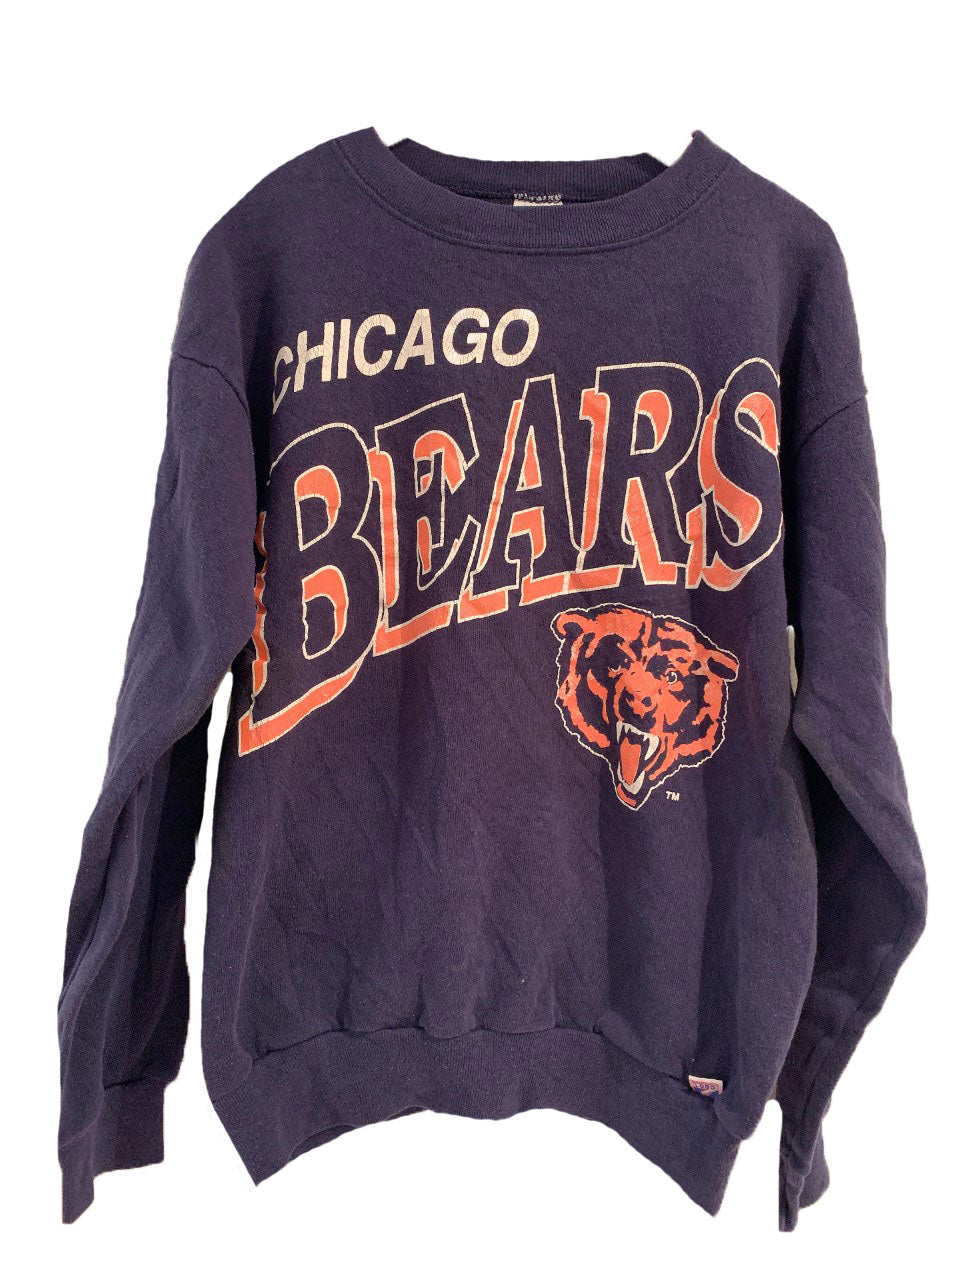 Chicago Bears crew